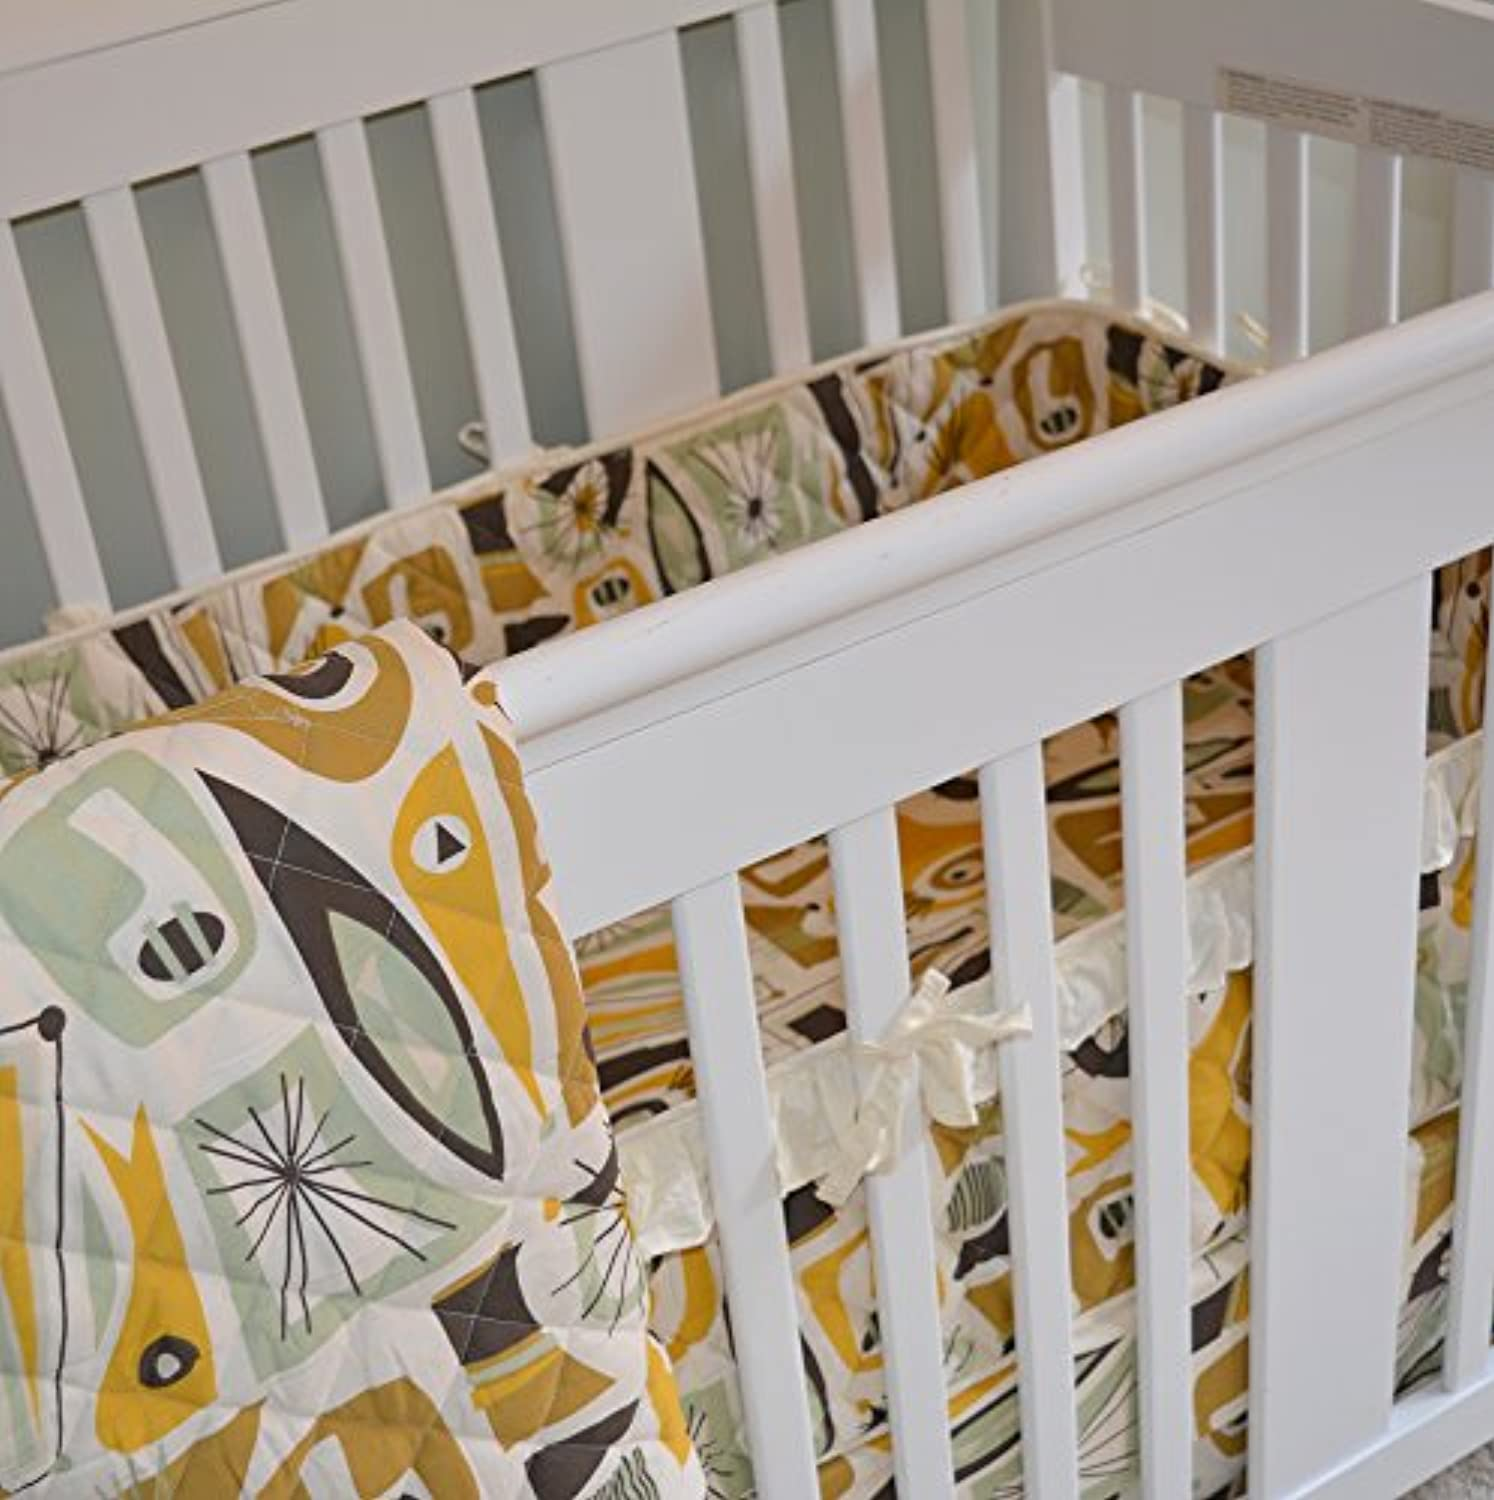 Mid-Century Modern Baby Bedding Set, Includes Fitted Crib Sheet and Crib Skirt by Sin in Linen